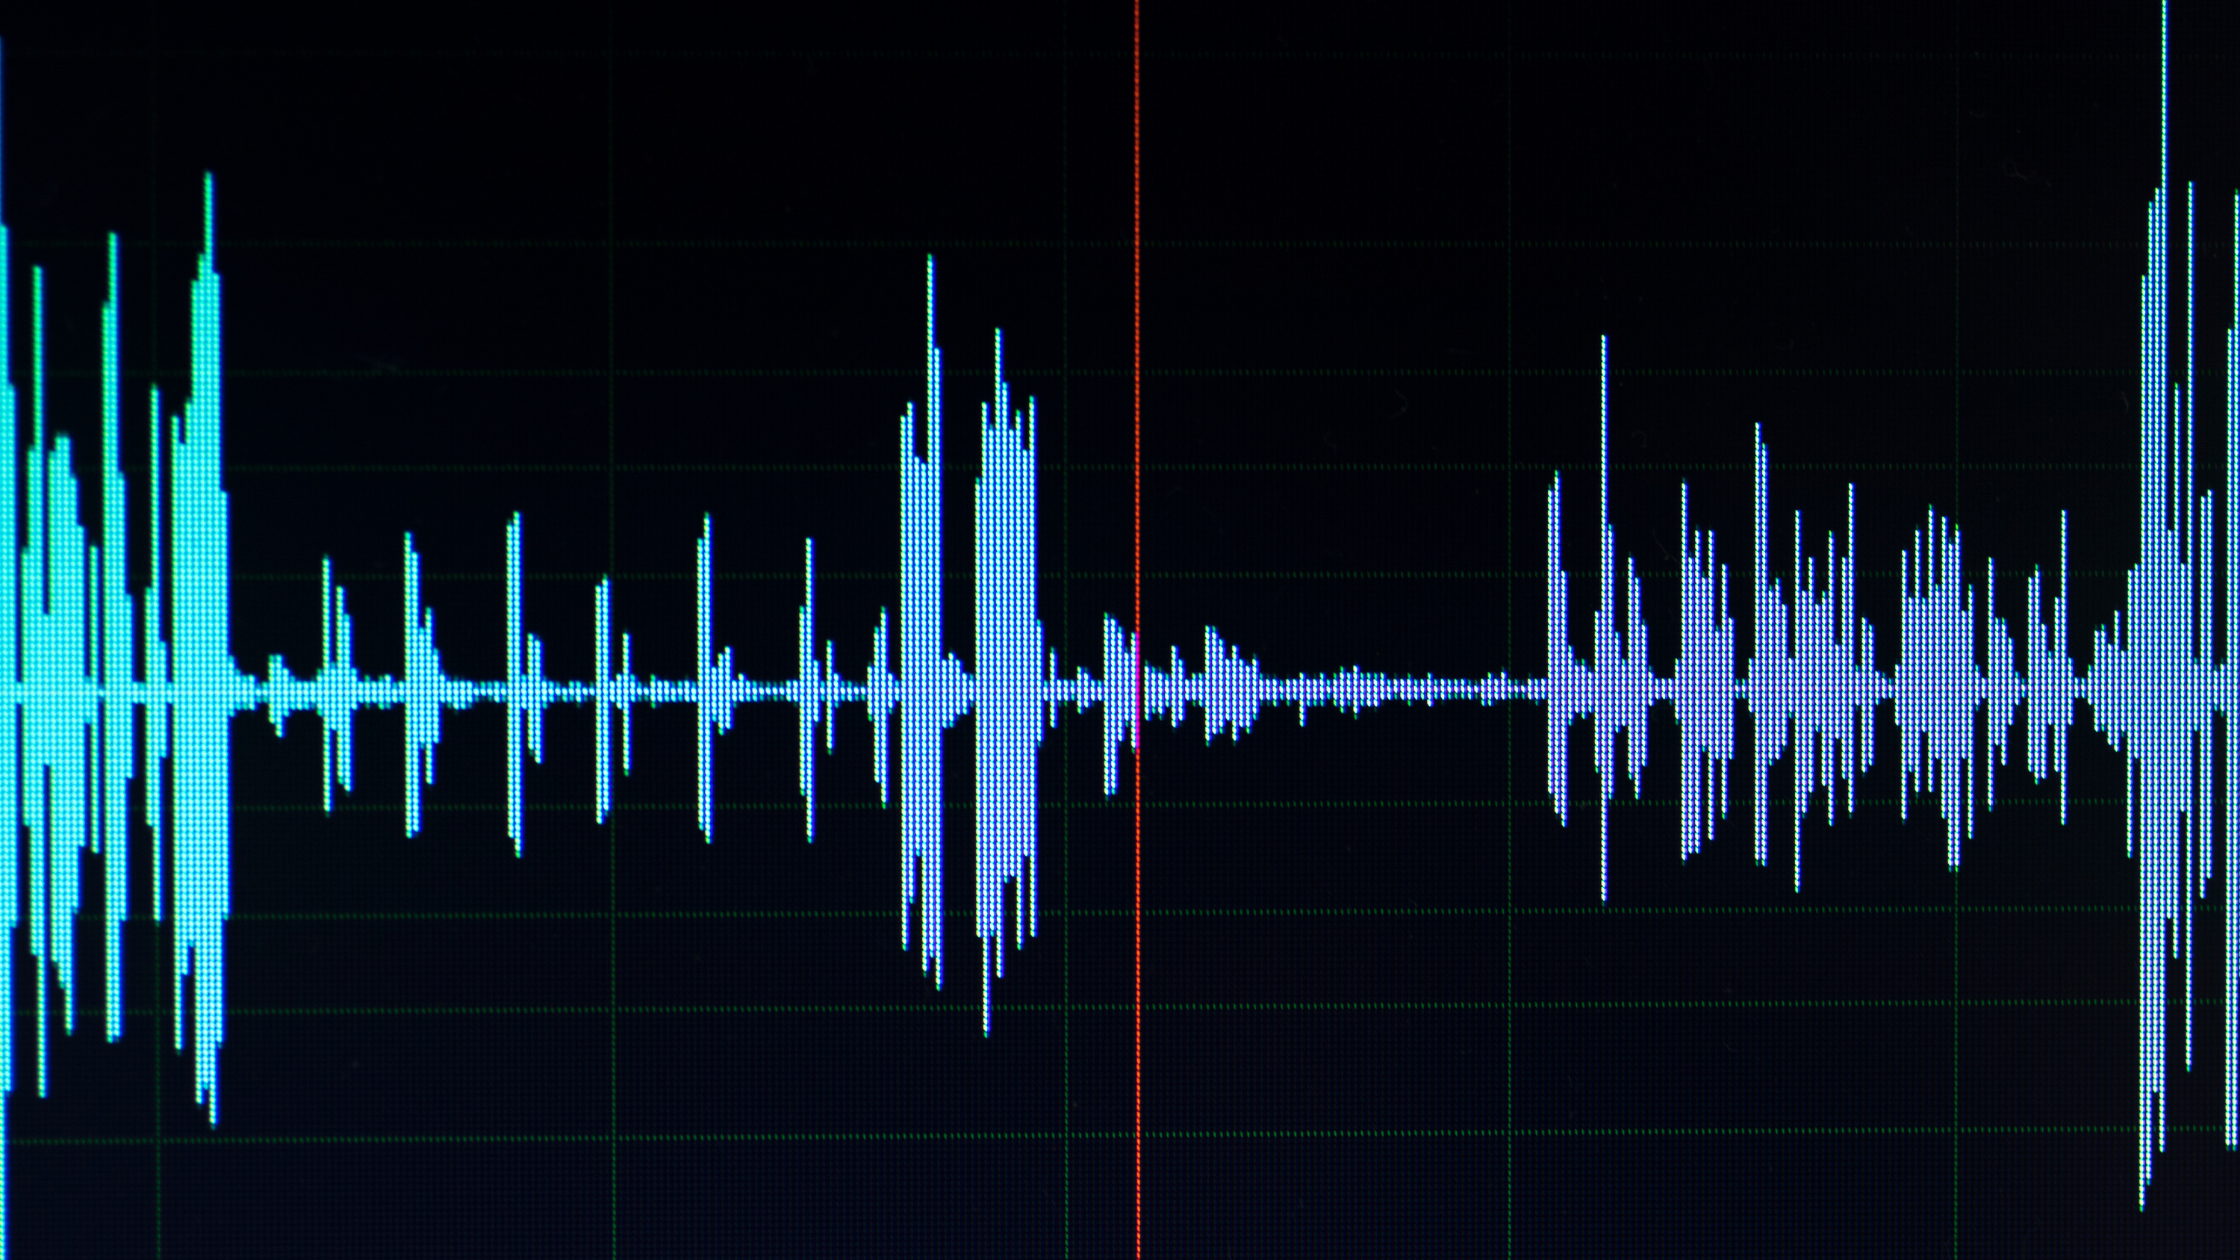 audio wave shown on a computer screen in audio editing software